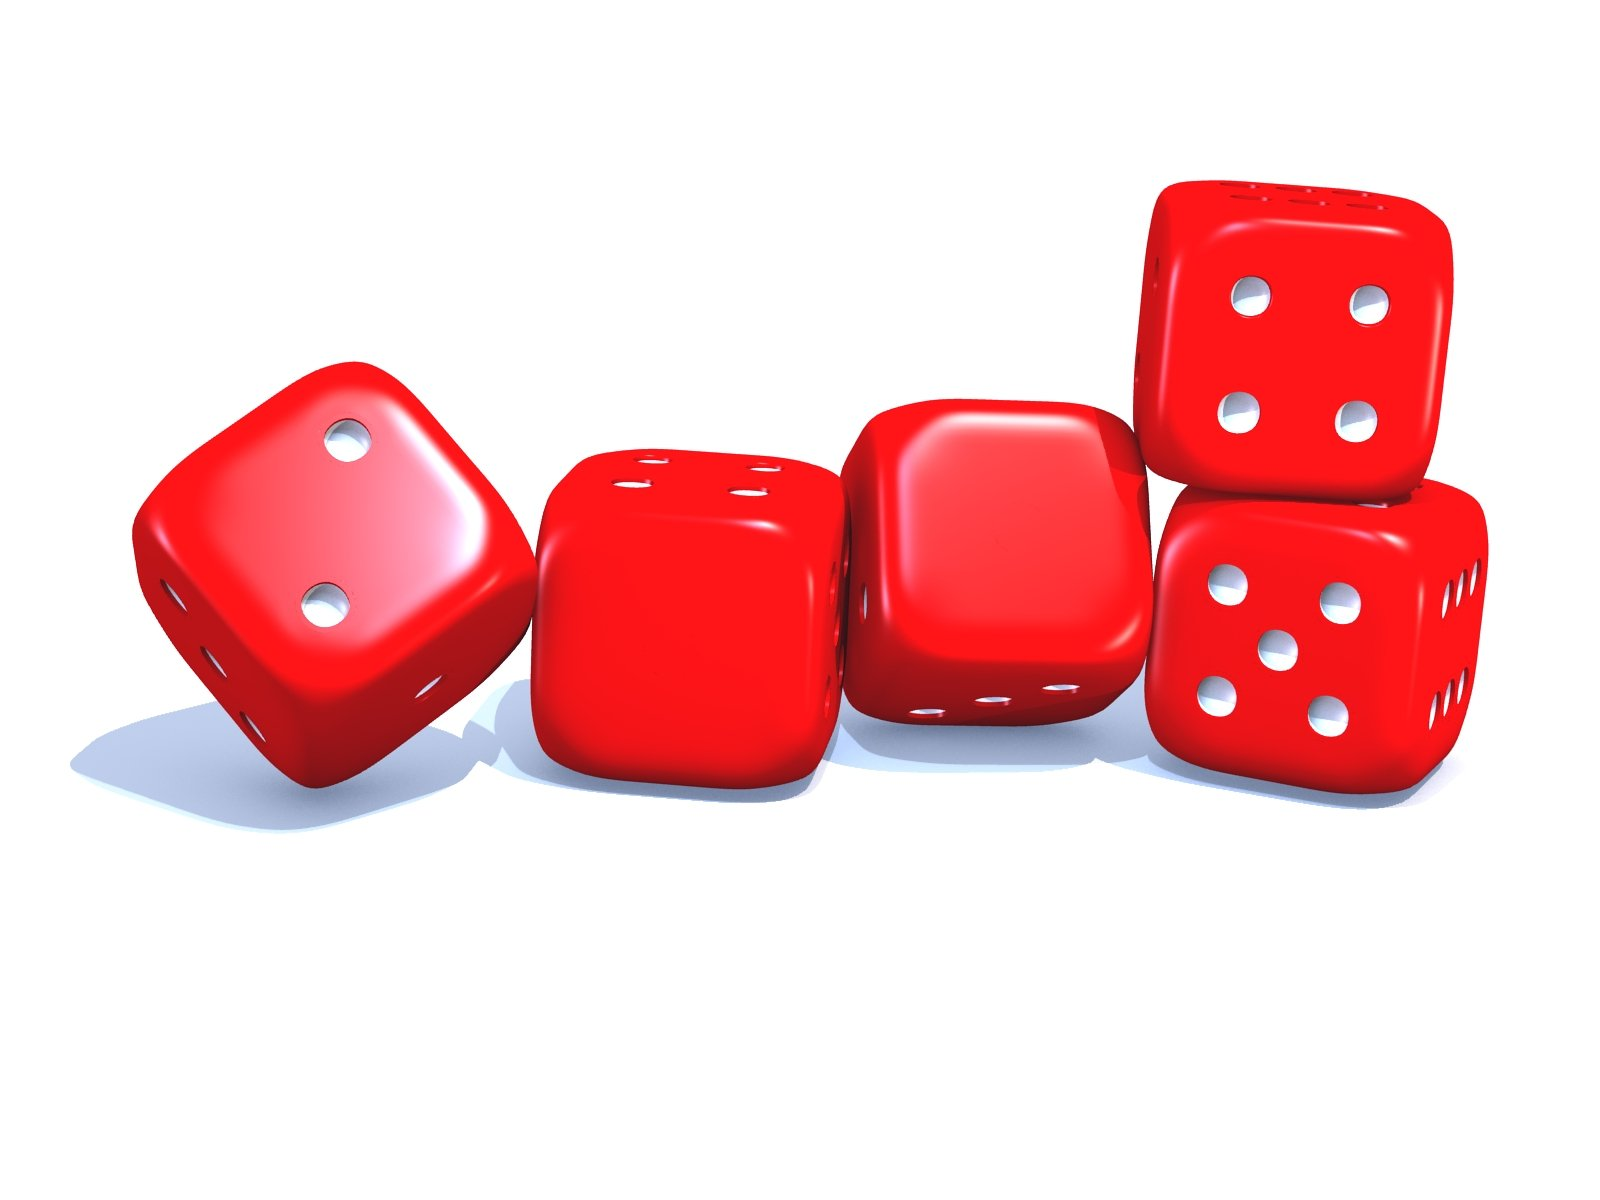 Dice 2009 red